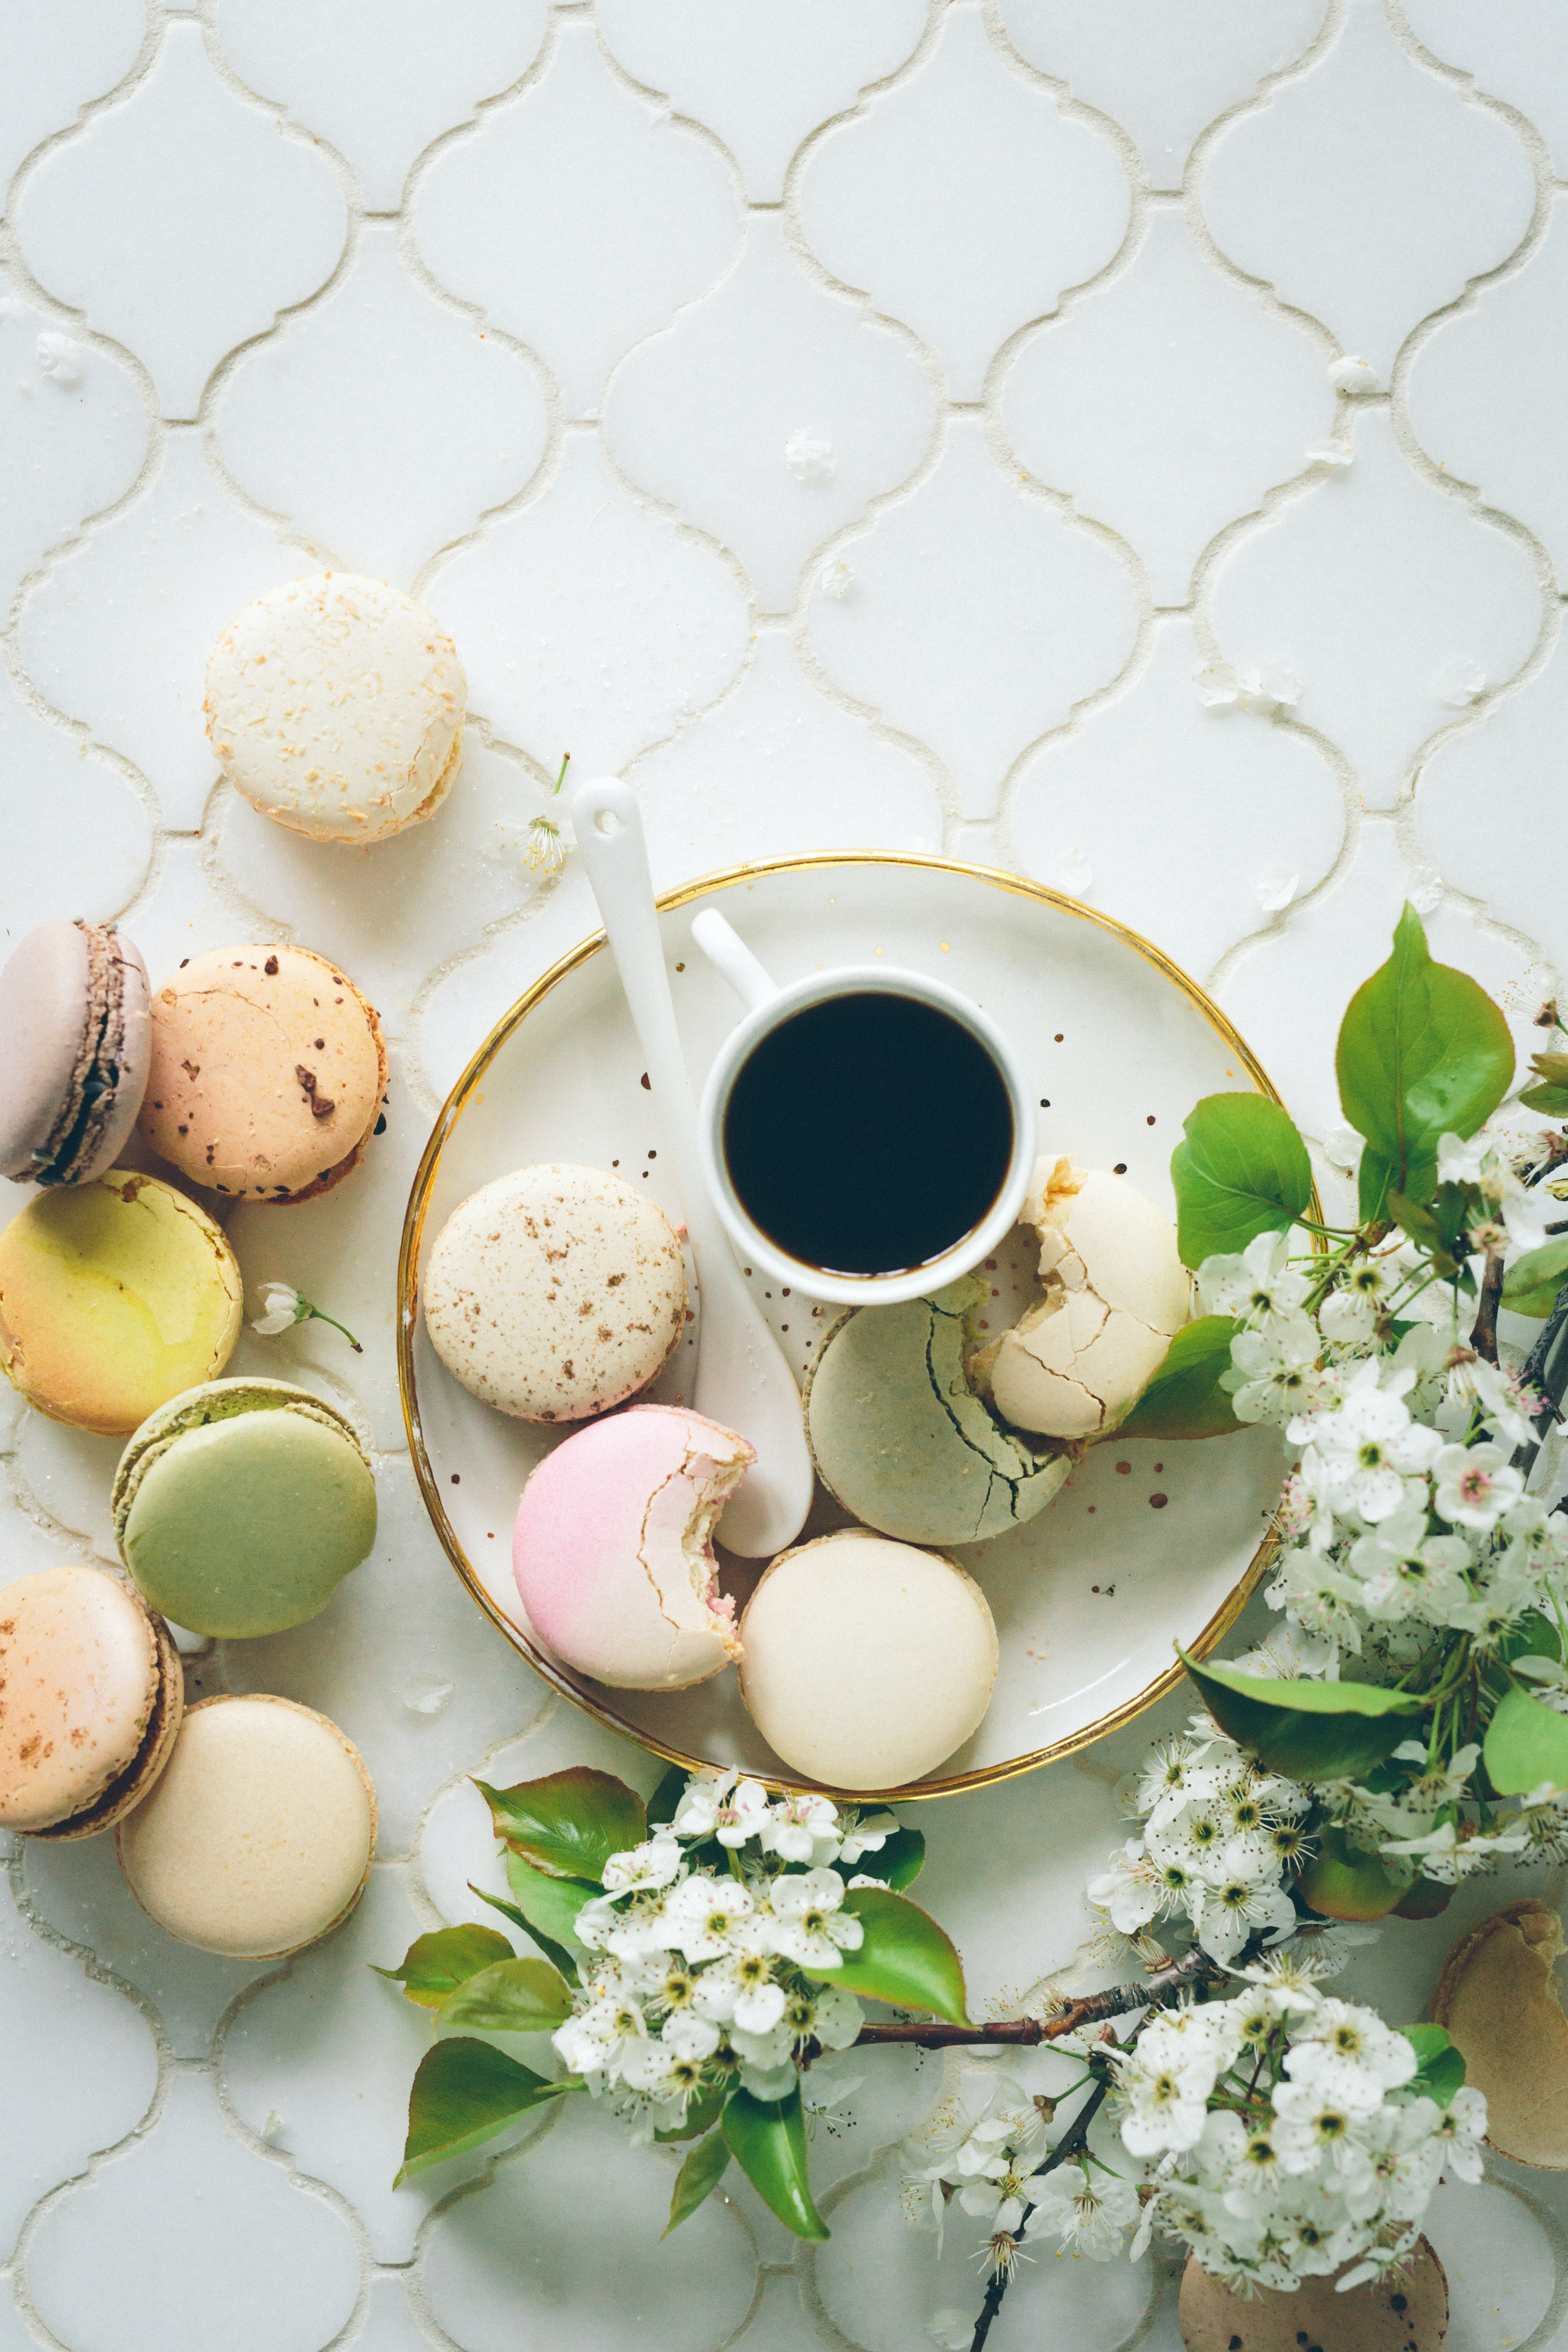 An overhead shot of a cup of coffee and macaroons on a coaster next to white flowers